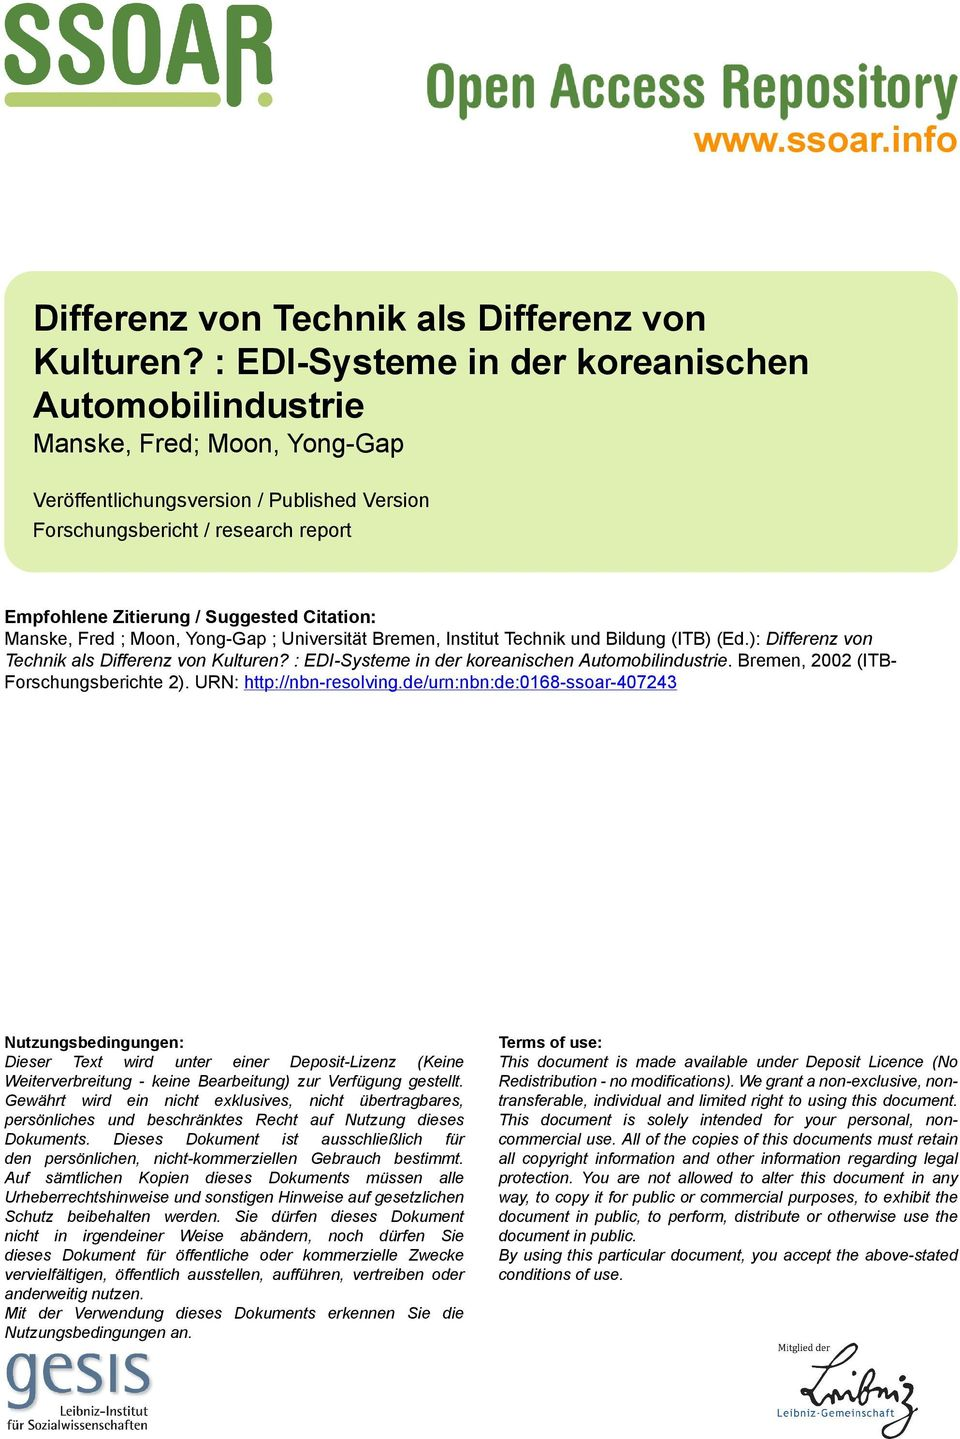 Citation: Manske, Fred ; Moon, Yong-Gap ; Universität Bremen, Institut Technik und Bildung (ITB) (Ed.): Differenz von Technik als Differenz von Kulturen?